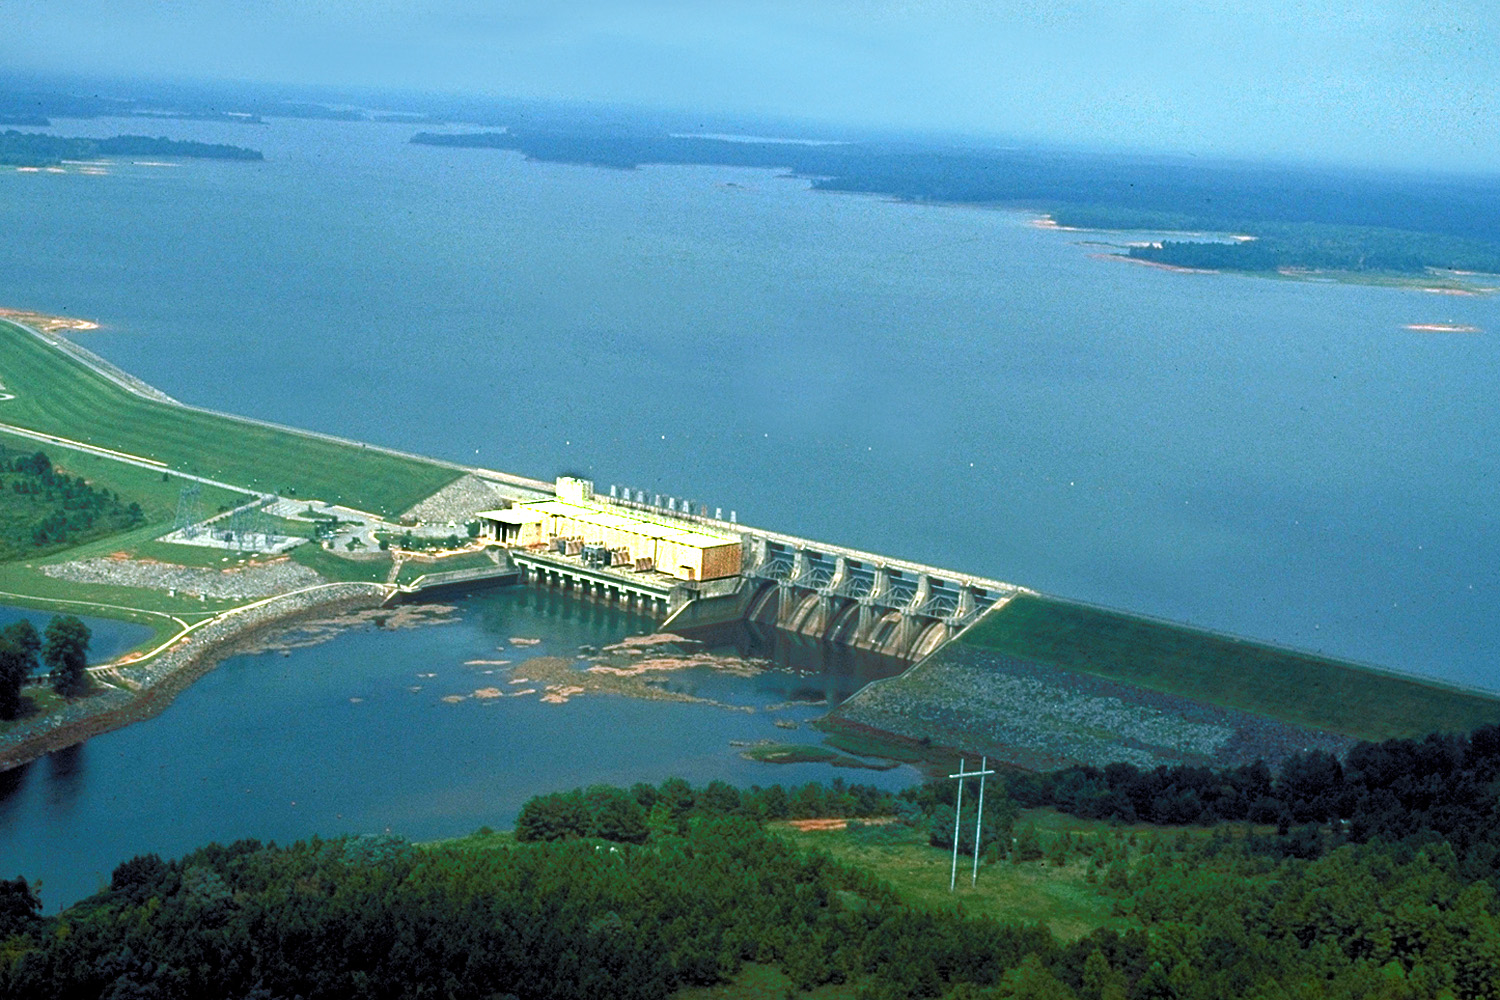 pickwick lake map with File Usace West Point Dam And Lake on Metro Flood Preparedness furthermore 10 Of The Worlds Most Expensive Homes furthermore File USACE West Point Dam and Lake likewise Old Hickory Lake Cumberland River Map as well Maplist.